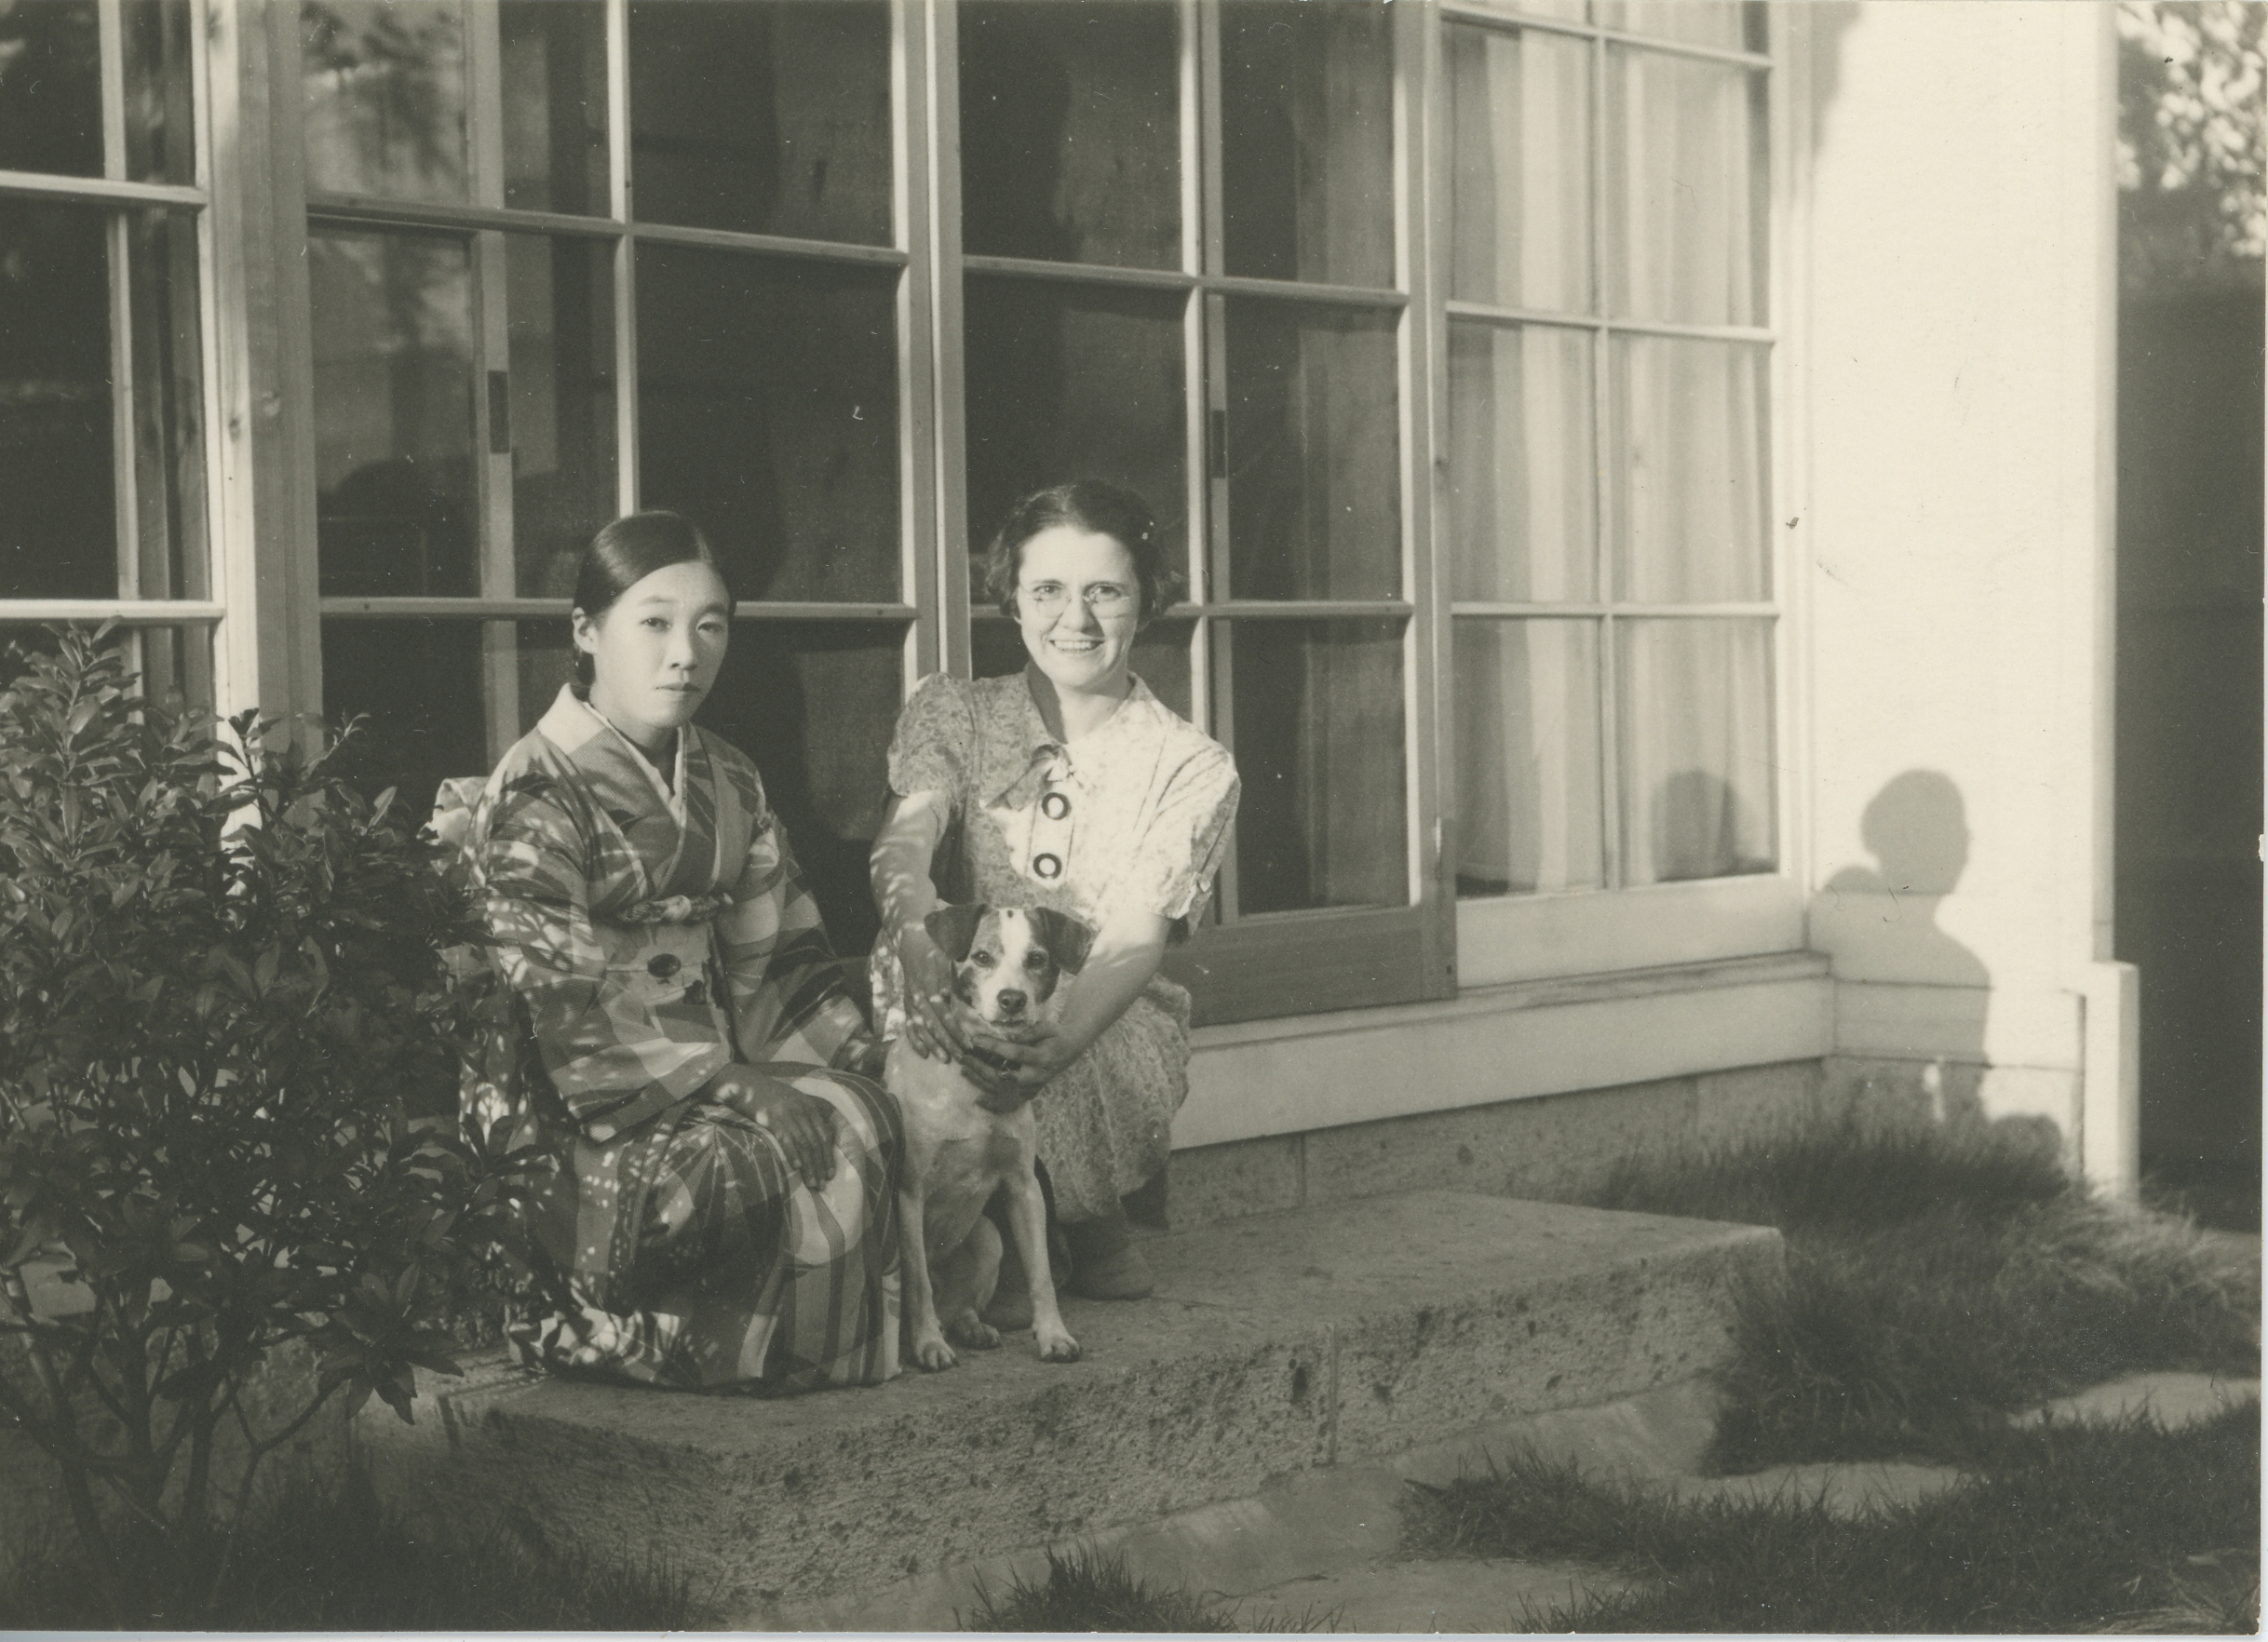 Missionary Lora Patton (R) with her cook, Chapter 6. Courtesy of American Baptist Historical Society